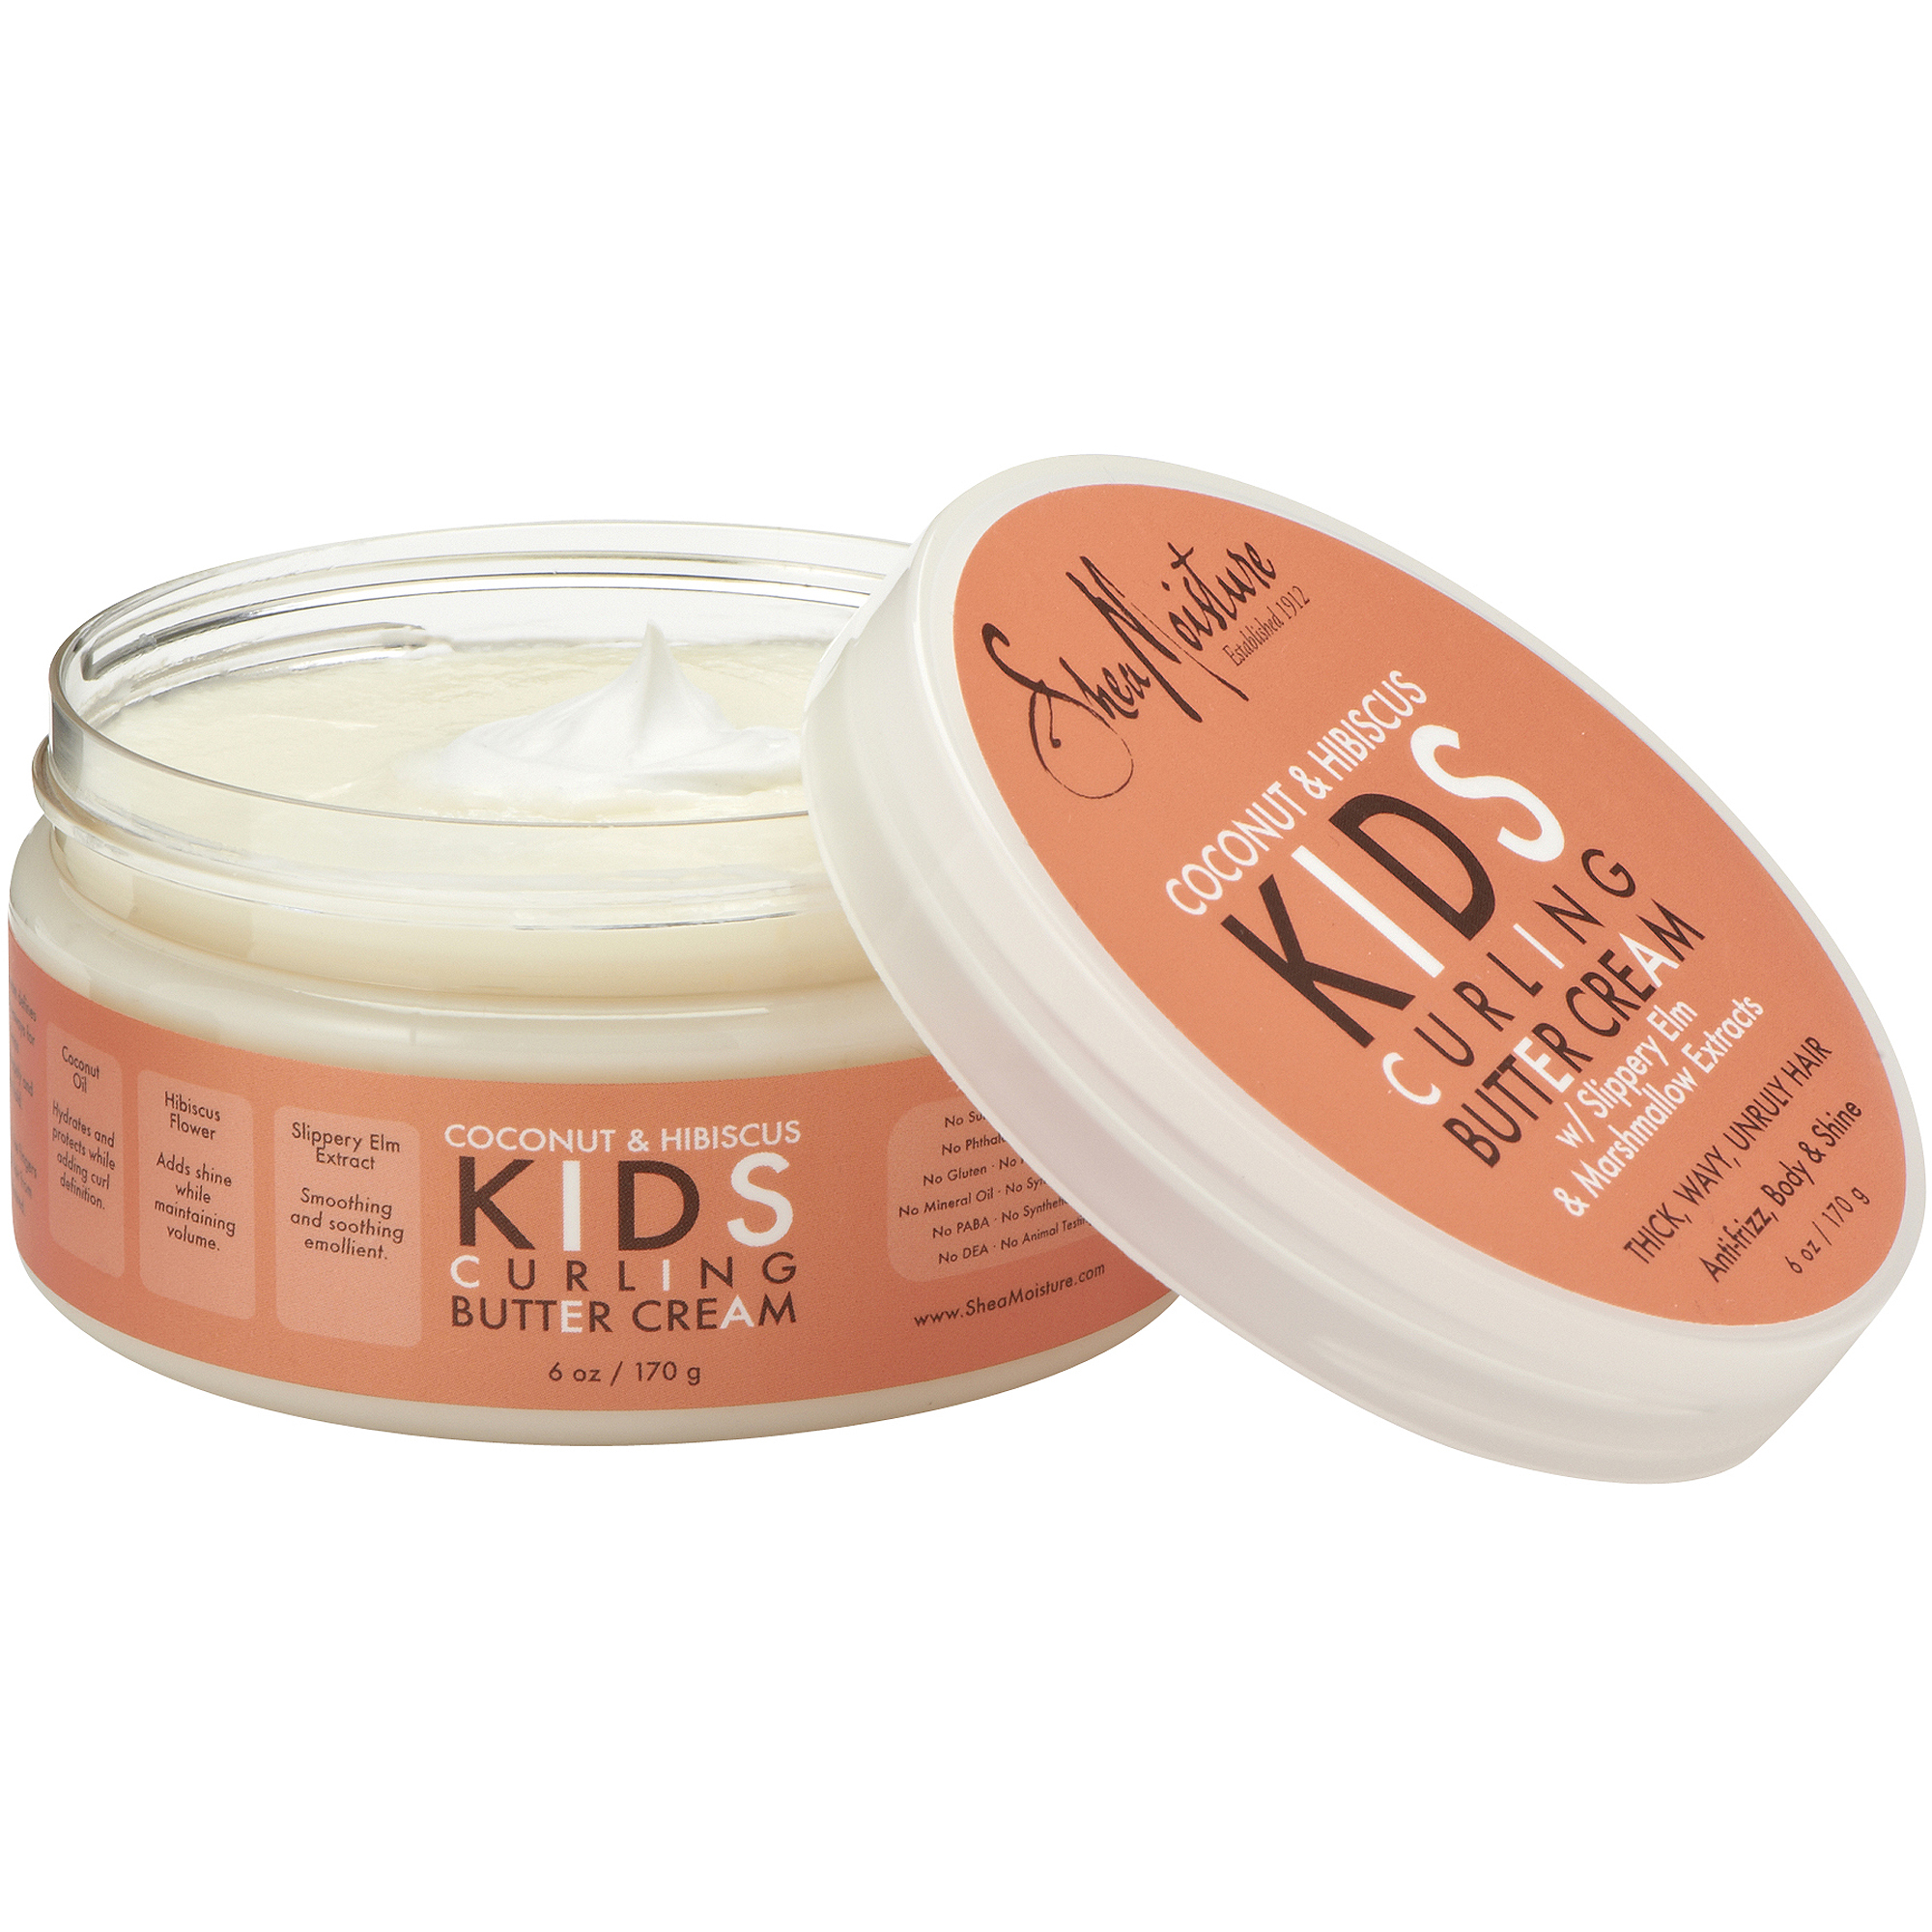 SheaMoisture Coconut & Hibiscus Kids Curling Butter Creme, 6 oz